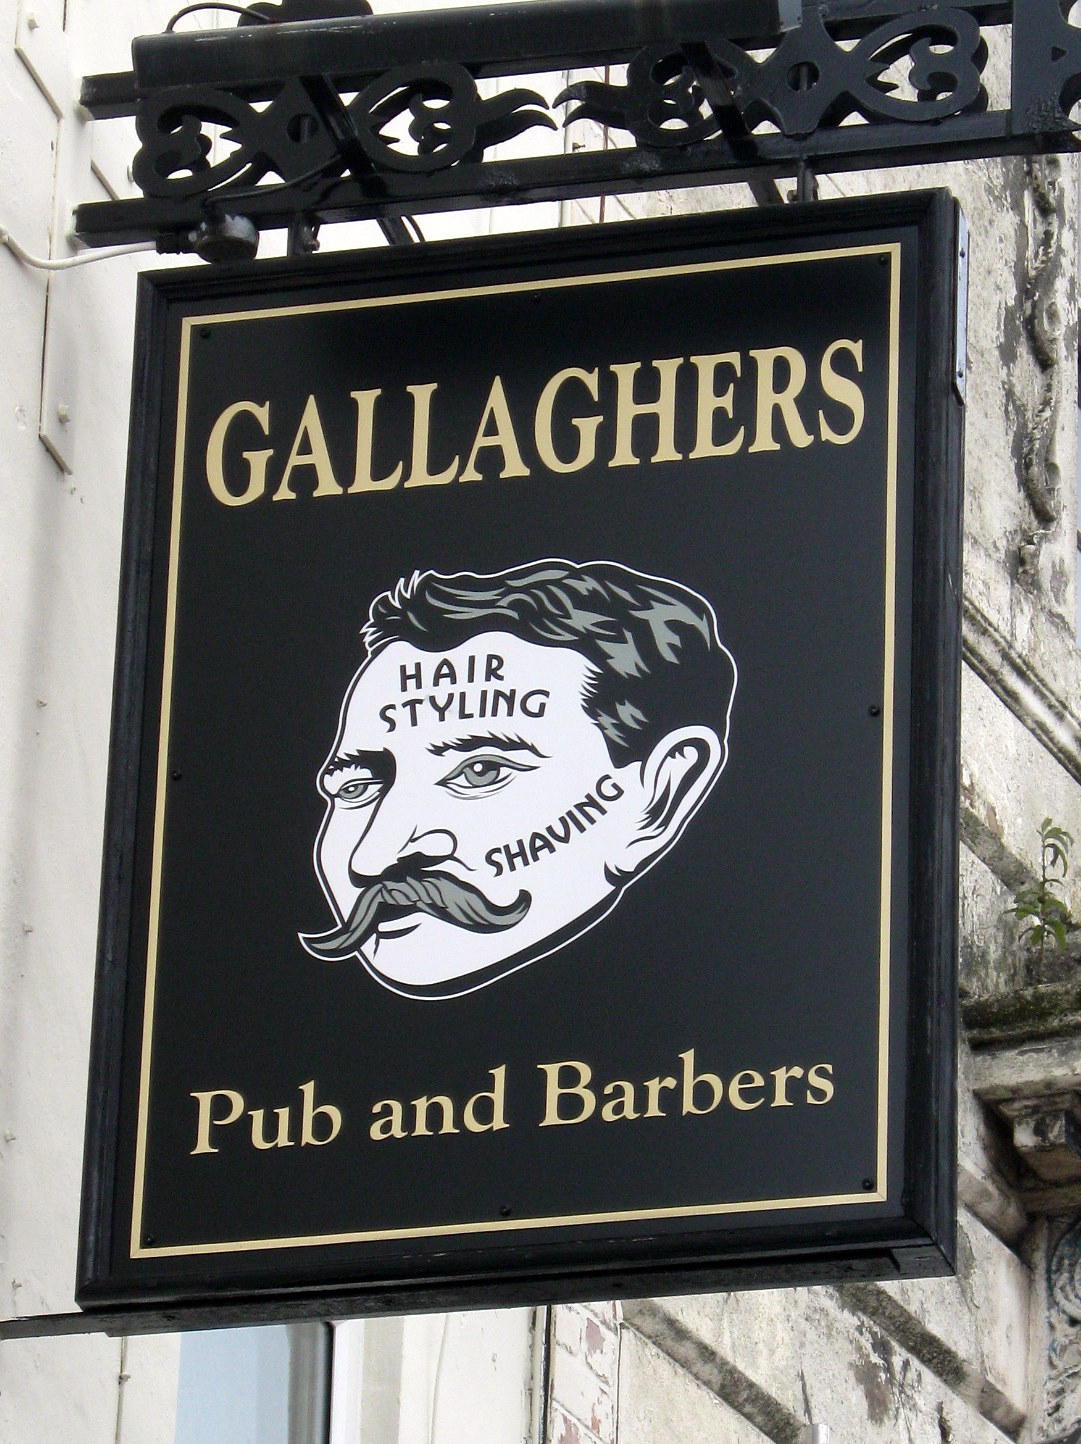 ... Wont Kill You - Beer Blog: Gallaghers Pub and Barbers, Birkenhead